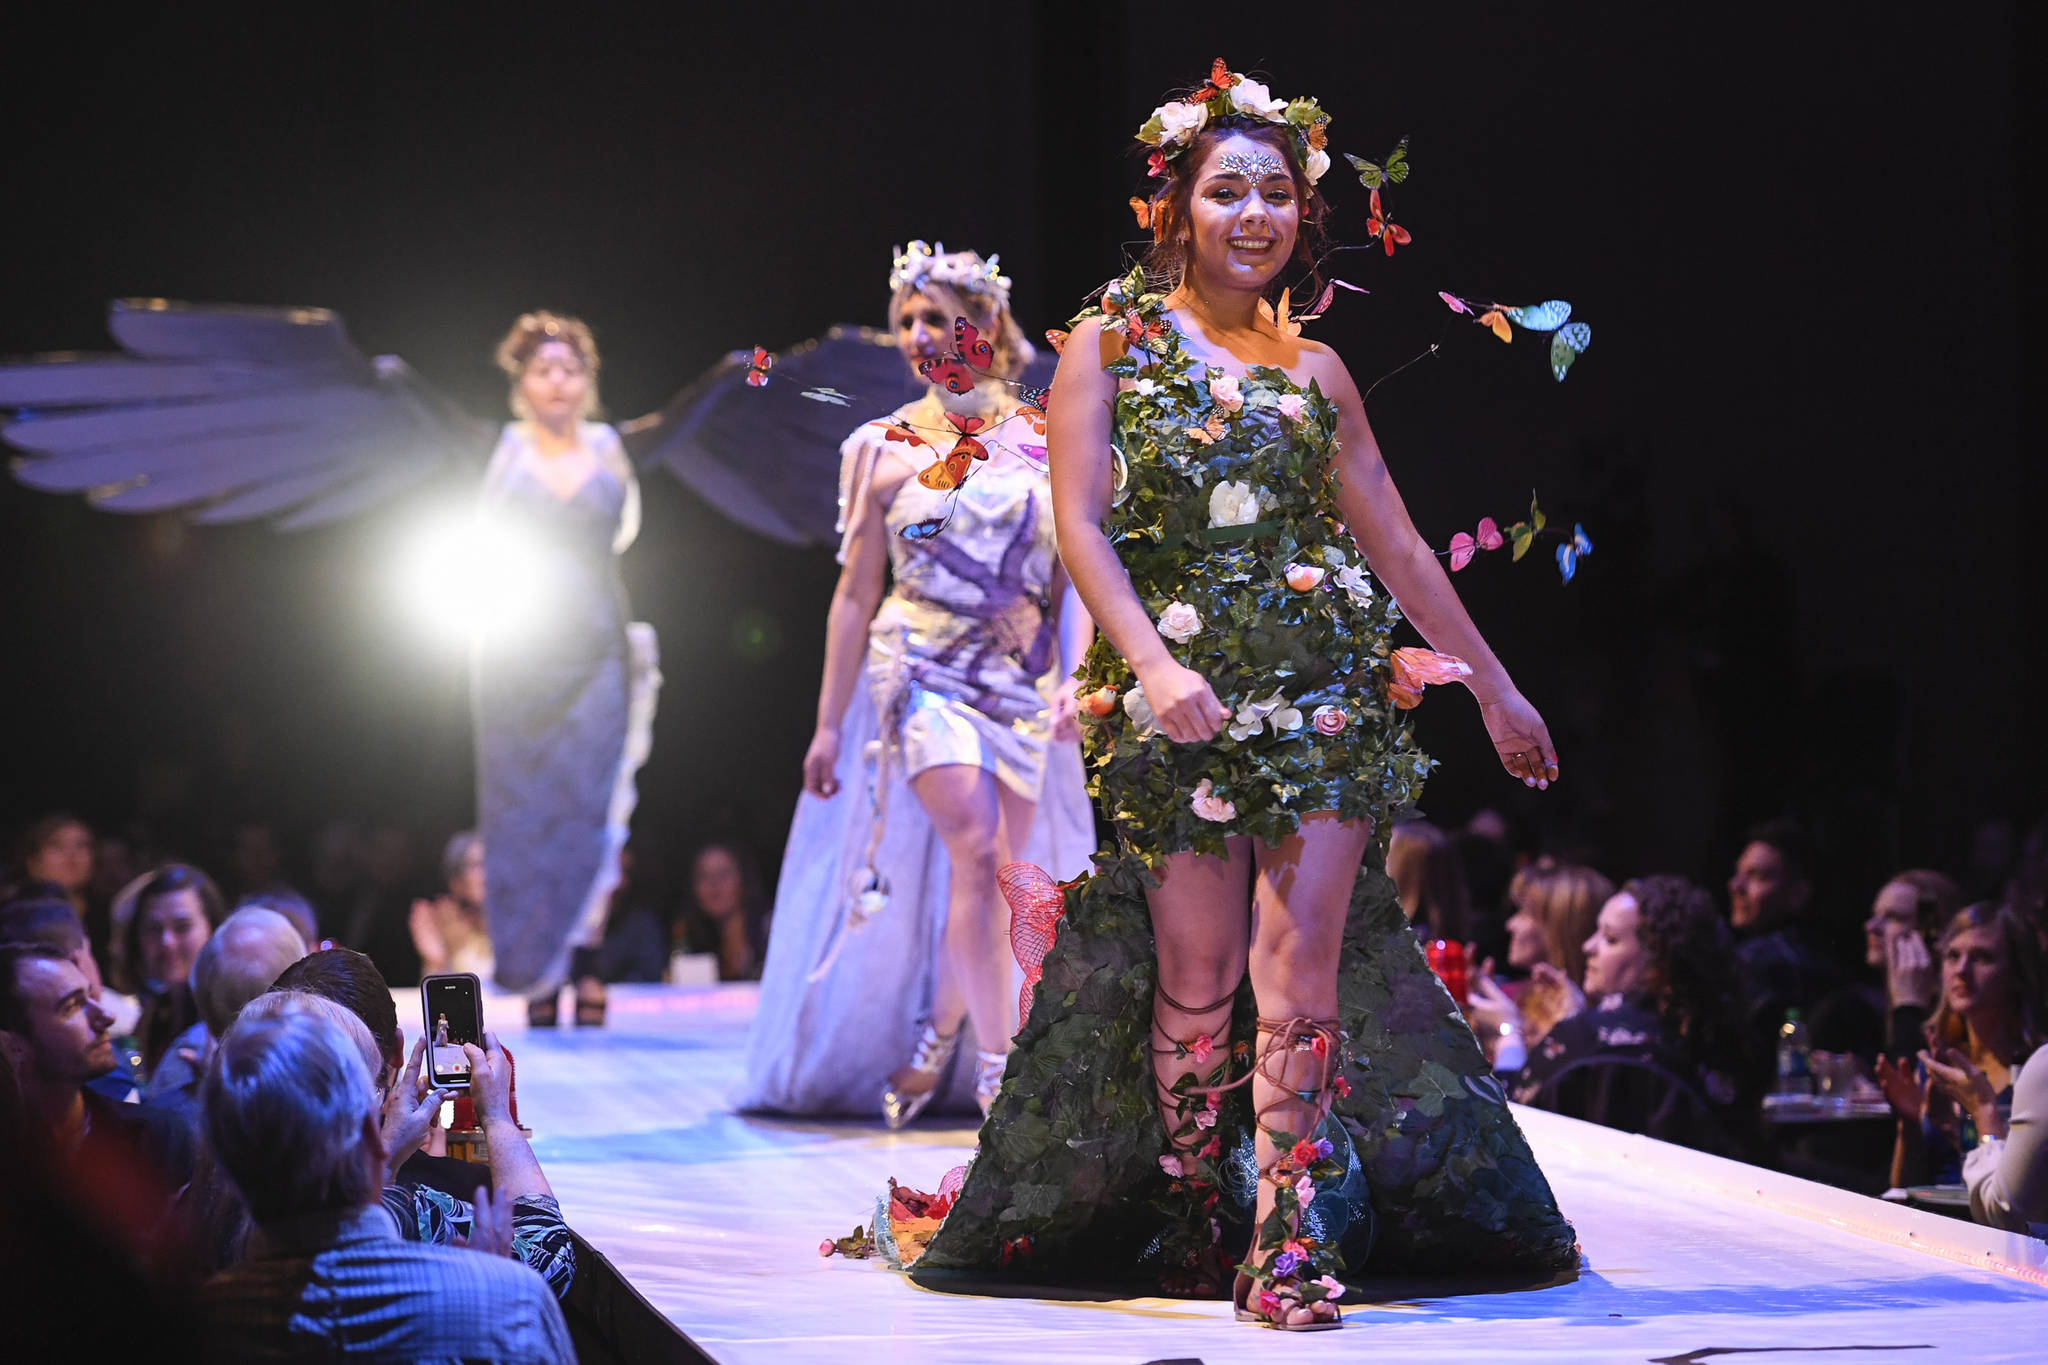 """Maleny Villagomez, Samantha Harrison and Tesa Castillo work the runway with the piece """"Protect What is Sacred"""" at the Wearable Art show at Centennial Hall on Saturday, Feb. 16, 2019. The artists are Paty Villagomez and Glo Ramirez. (Michael Penn 